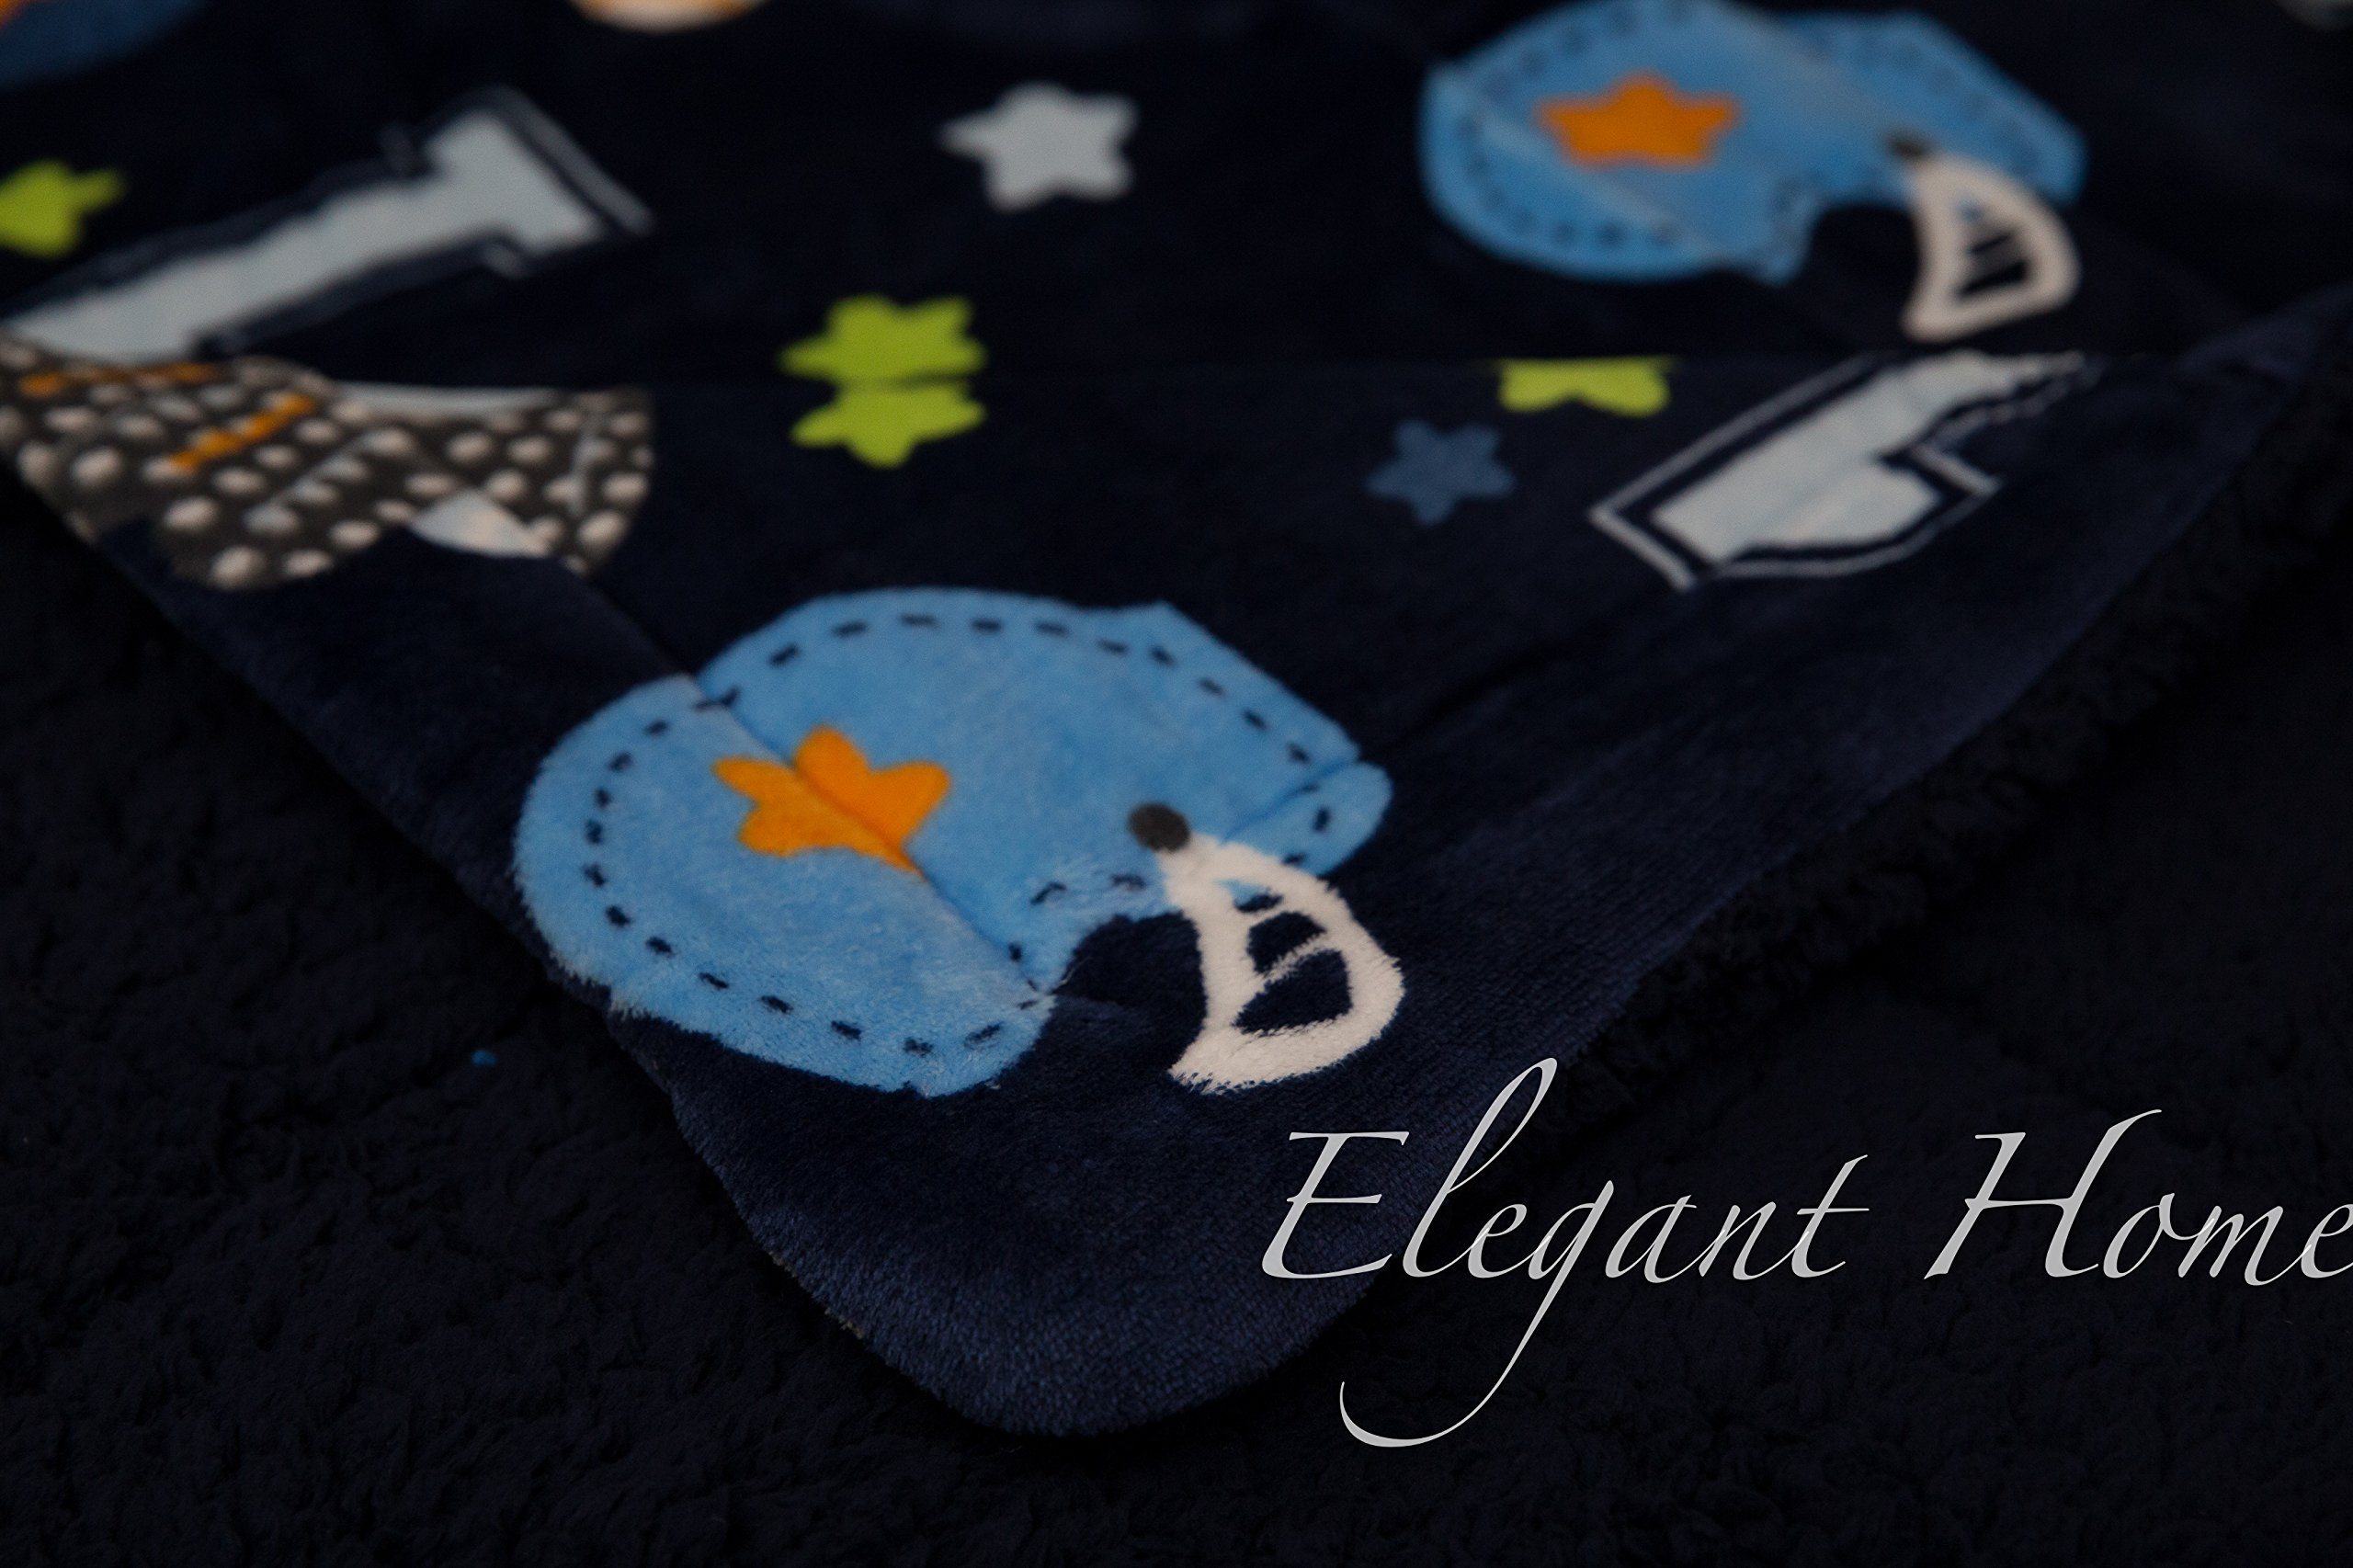 Elegant Home Kids Soft & Warm Sherpa Baby Toddler Boy Sherpa Blanket Navy Blue Sports Basketball Soccer Baseball Football Multicolor Printed Borrego Stroller or Toddler Bed Blanket Plush Throw 40X50